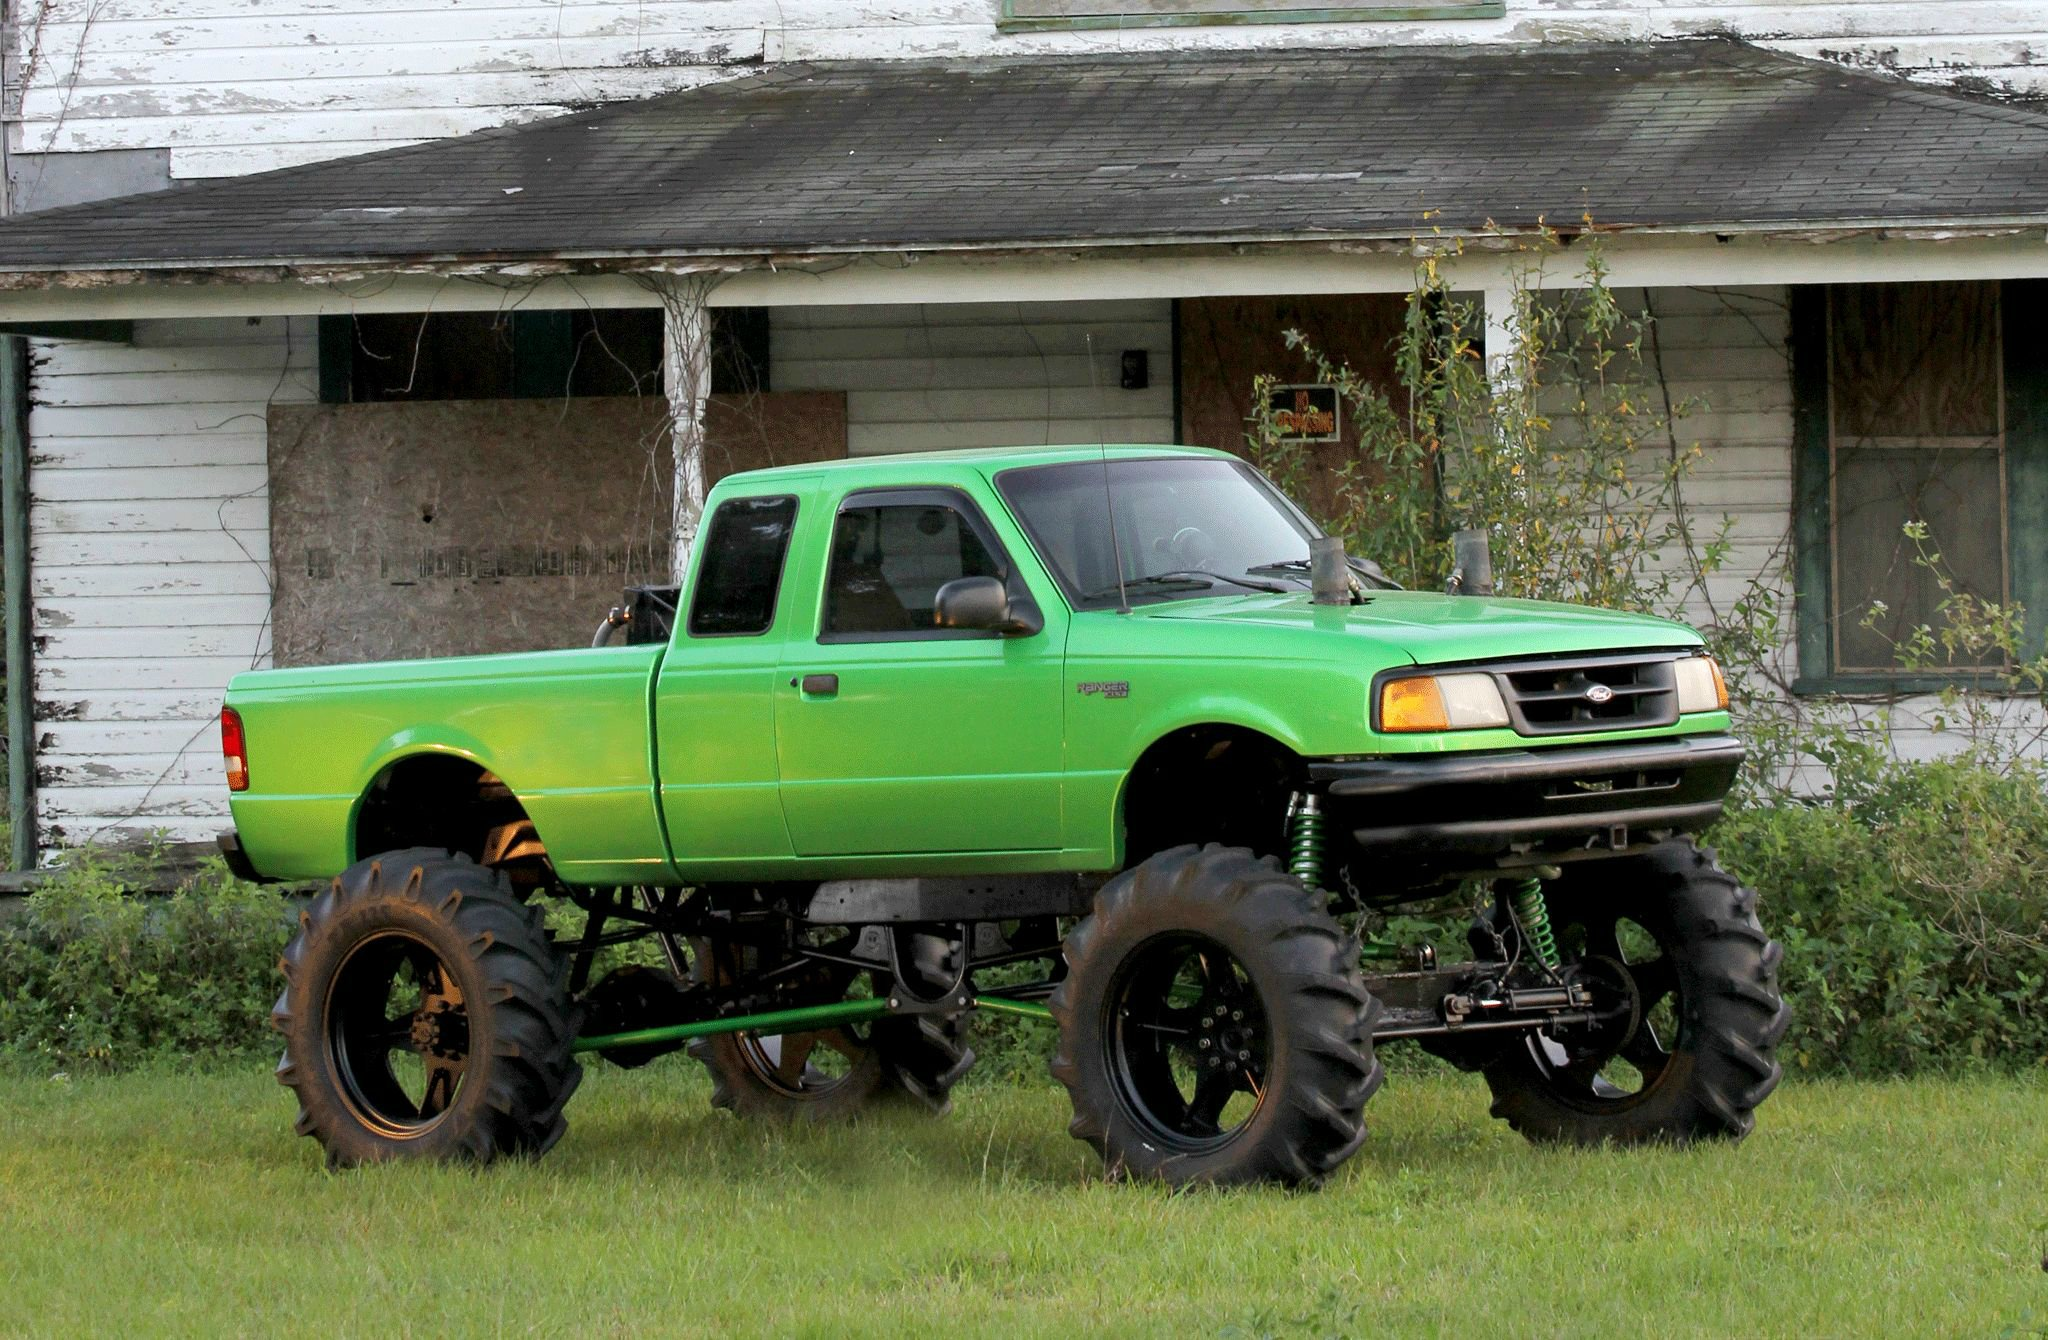 B A Bdddf C A F A B on 1995 Ford Ranger Engine Size